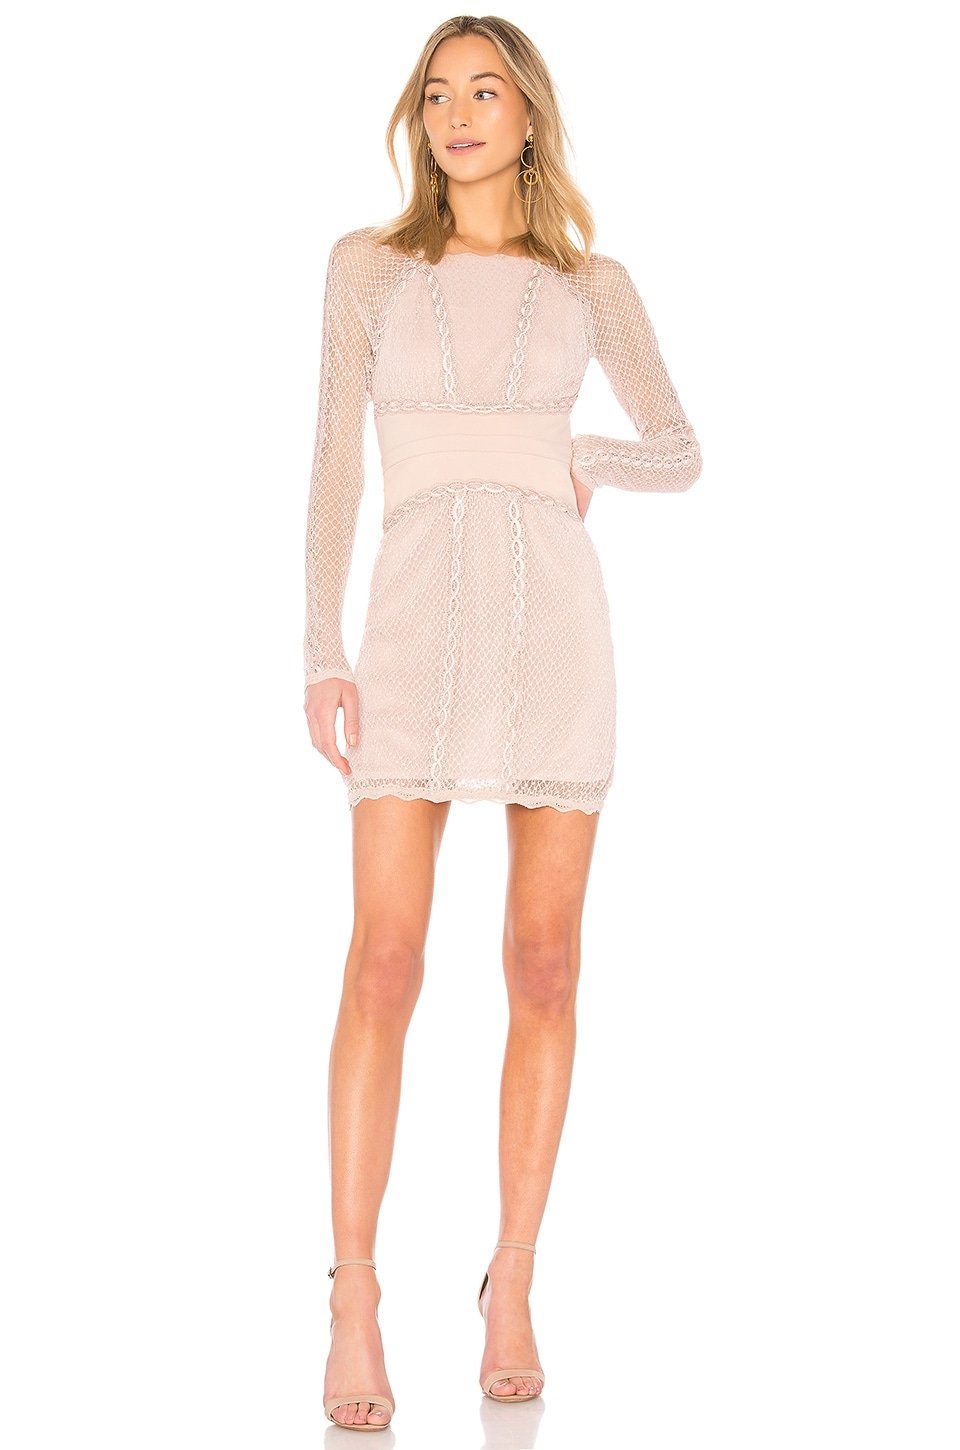 Free People Mixed Mesh Bodycon in Nude